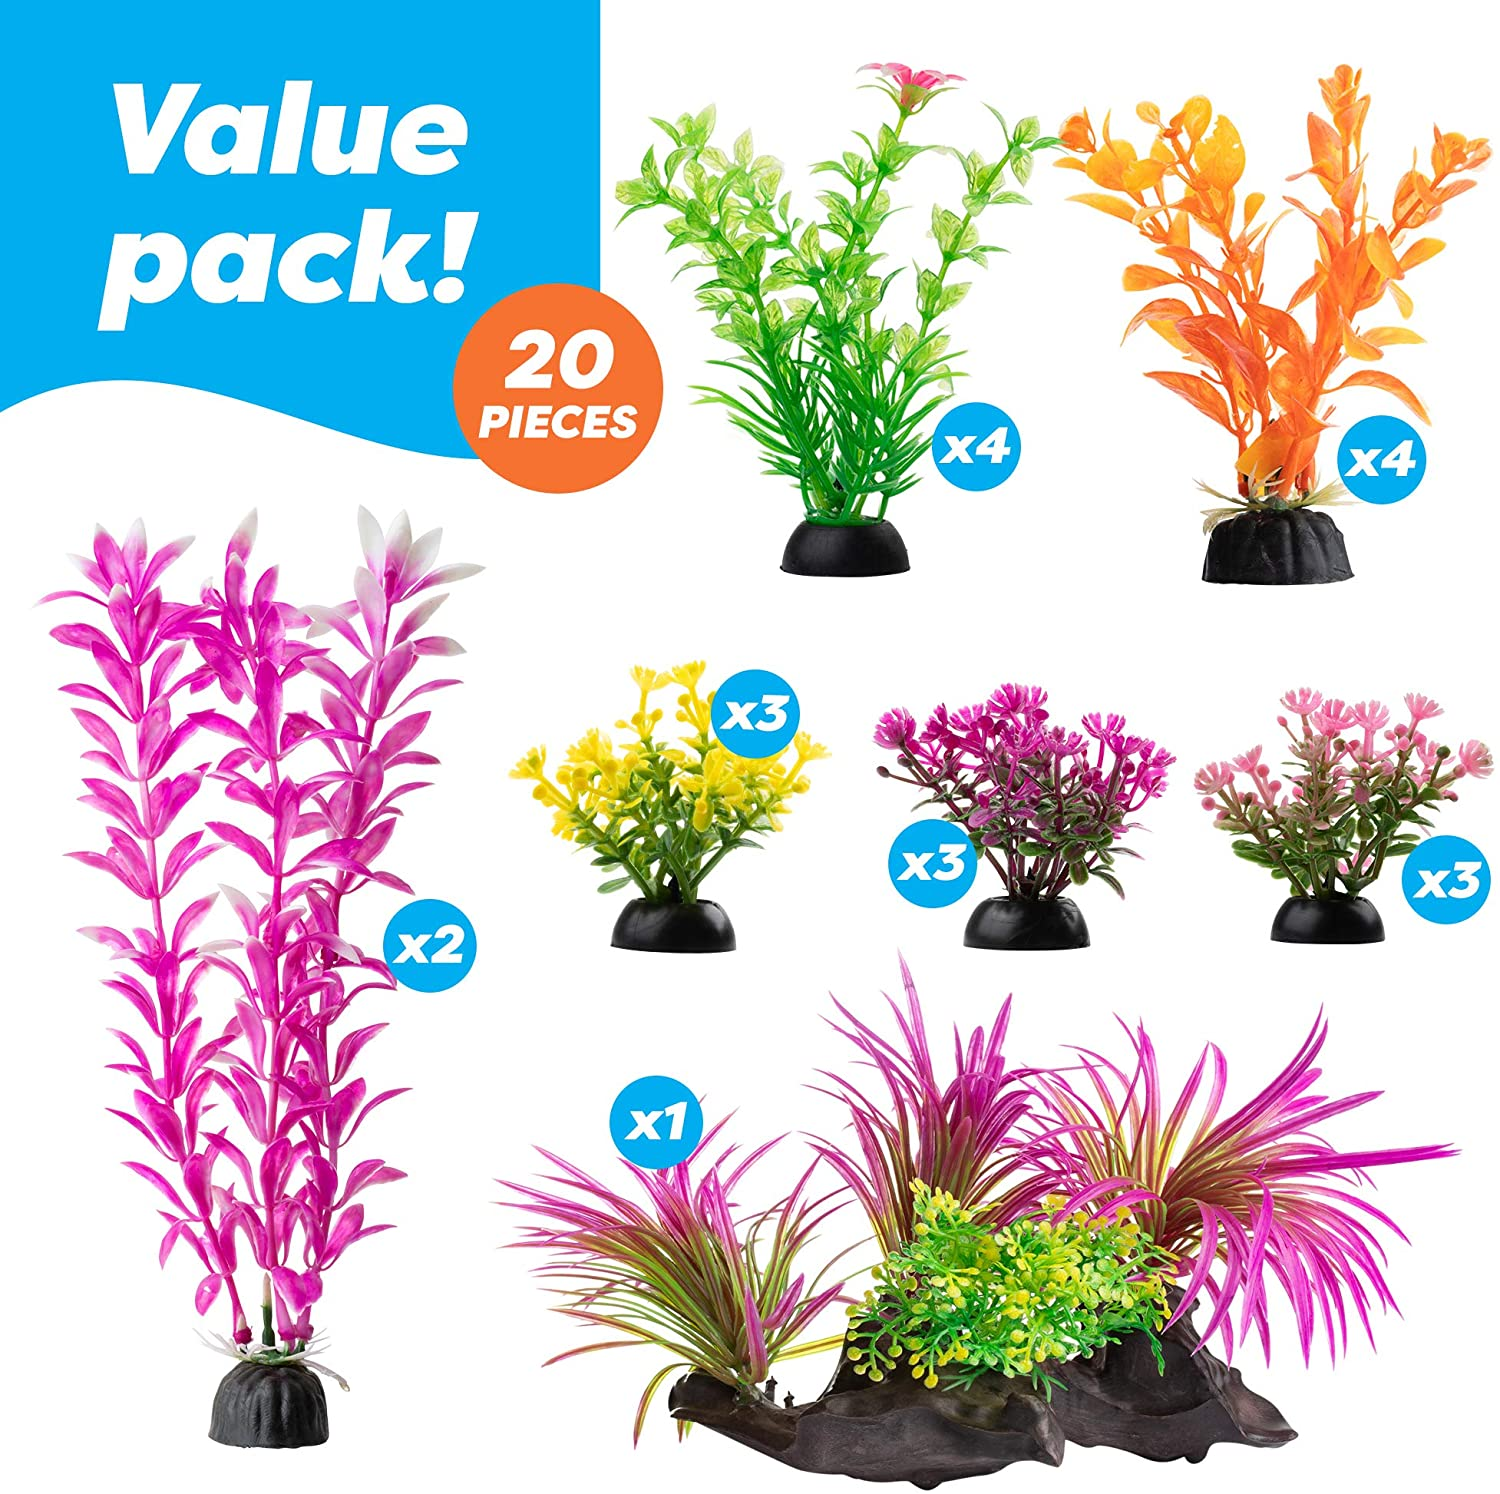 AroPaw Aquarium Decorations 20-30 Pack Lifelike Plastic Decor Fish Tank Plants, Small to Large